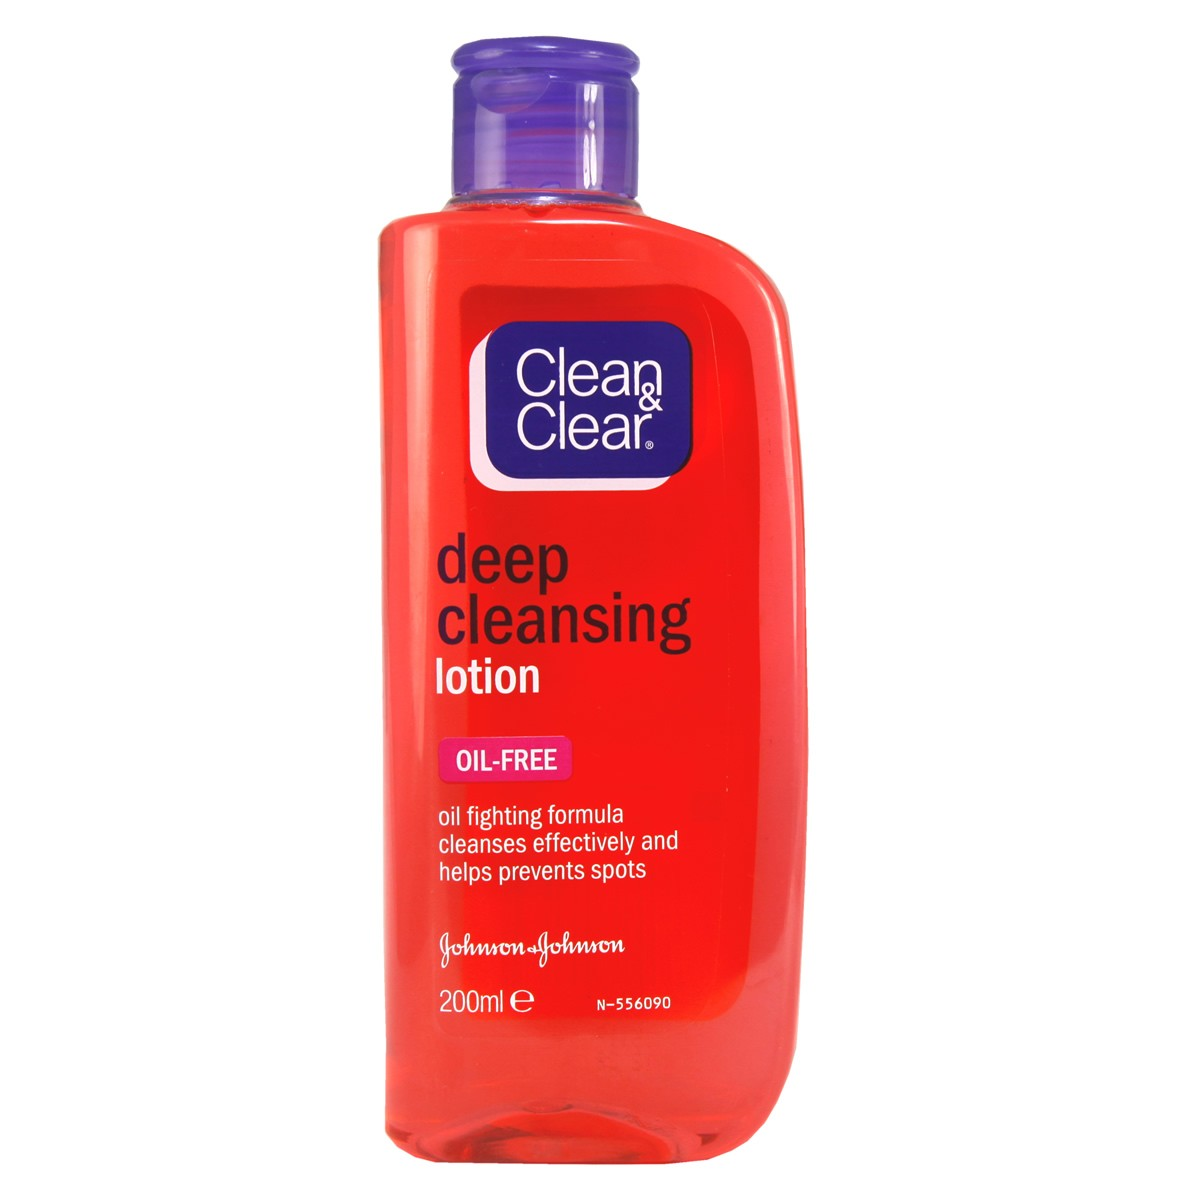 Clean & Clear Deep Cleansing Lotion - Oil Free